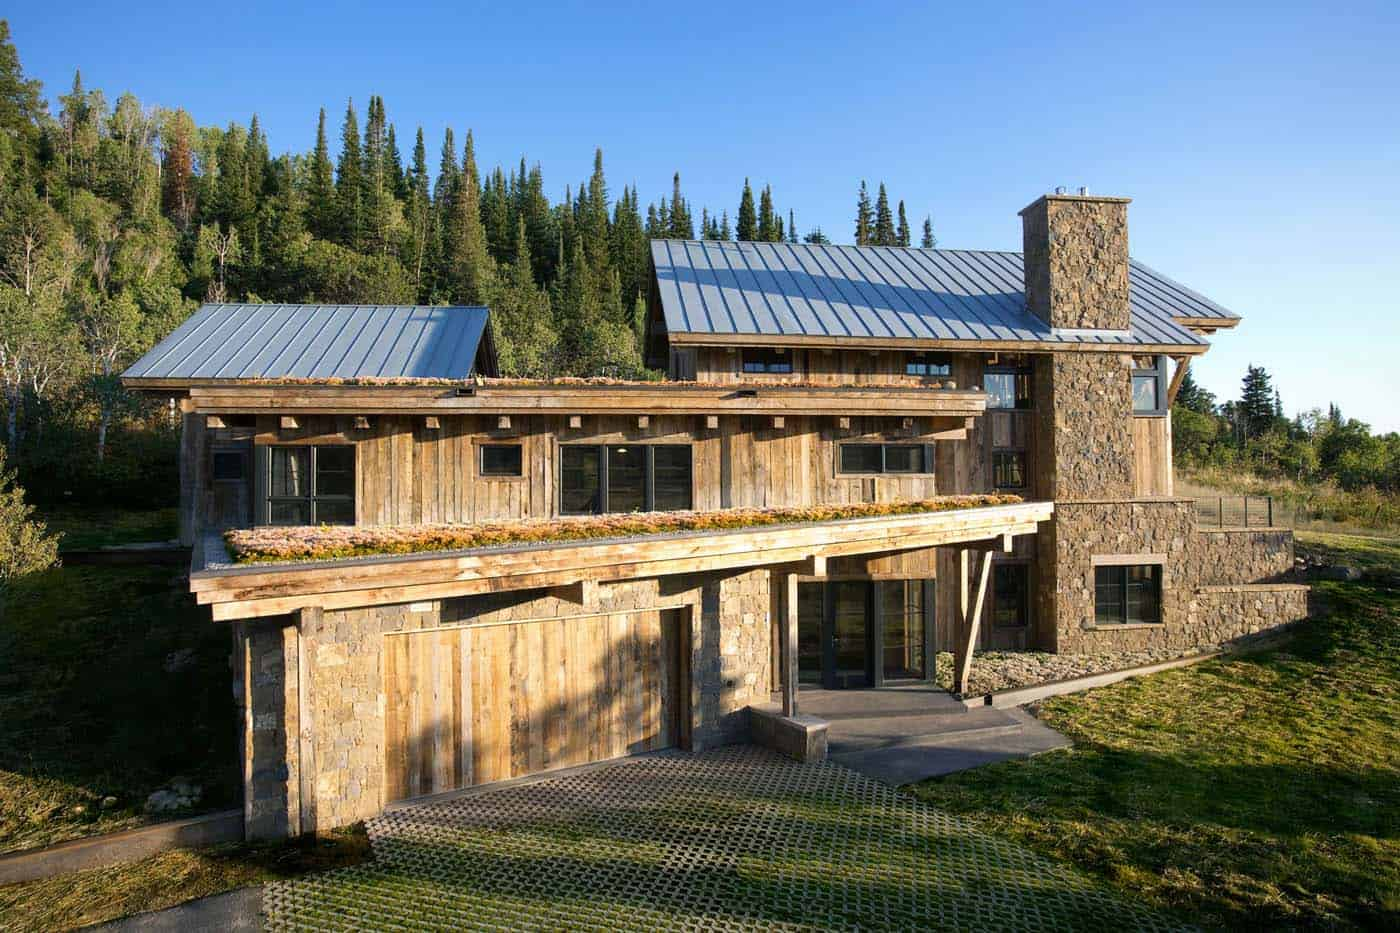 Contemporary Eco-Friendly Home-Robert Hawkins Architects-02-1 Kindesign